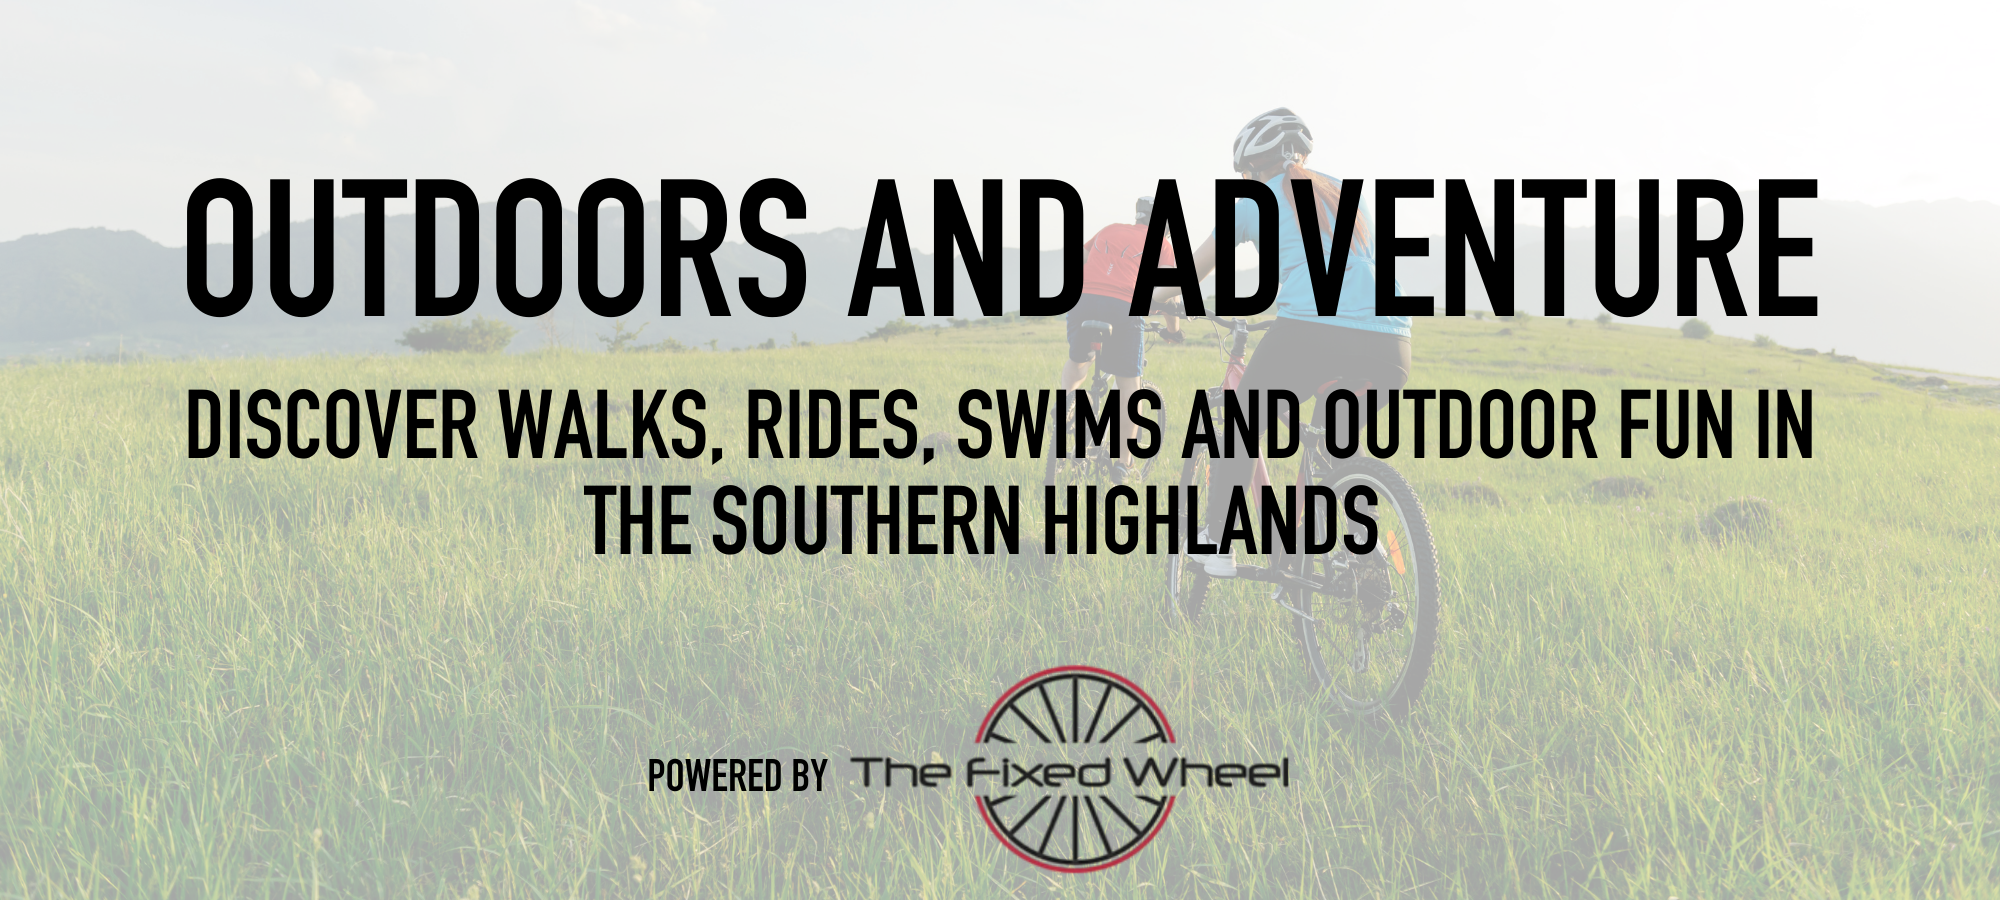 outdoor adventure in the southern highlands